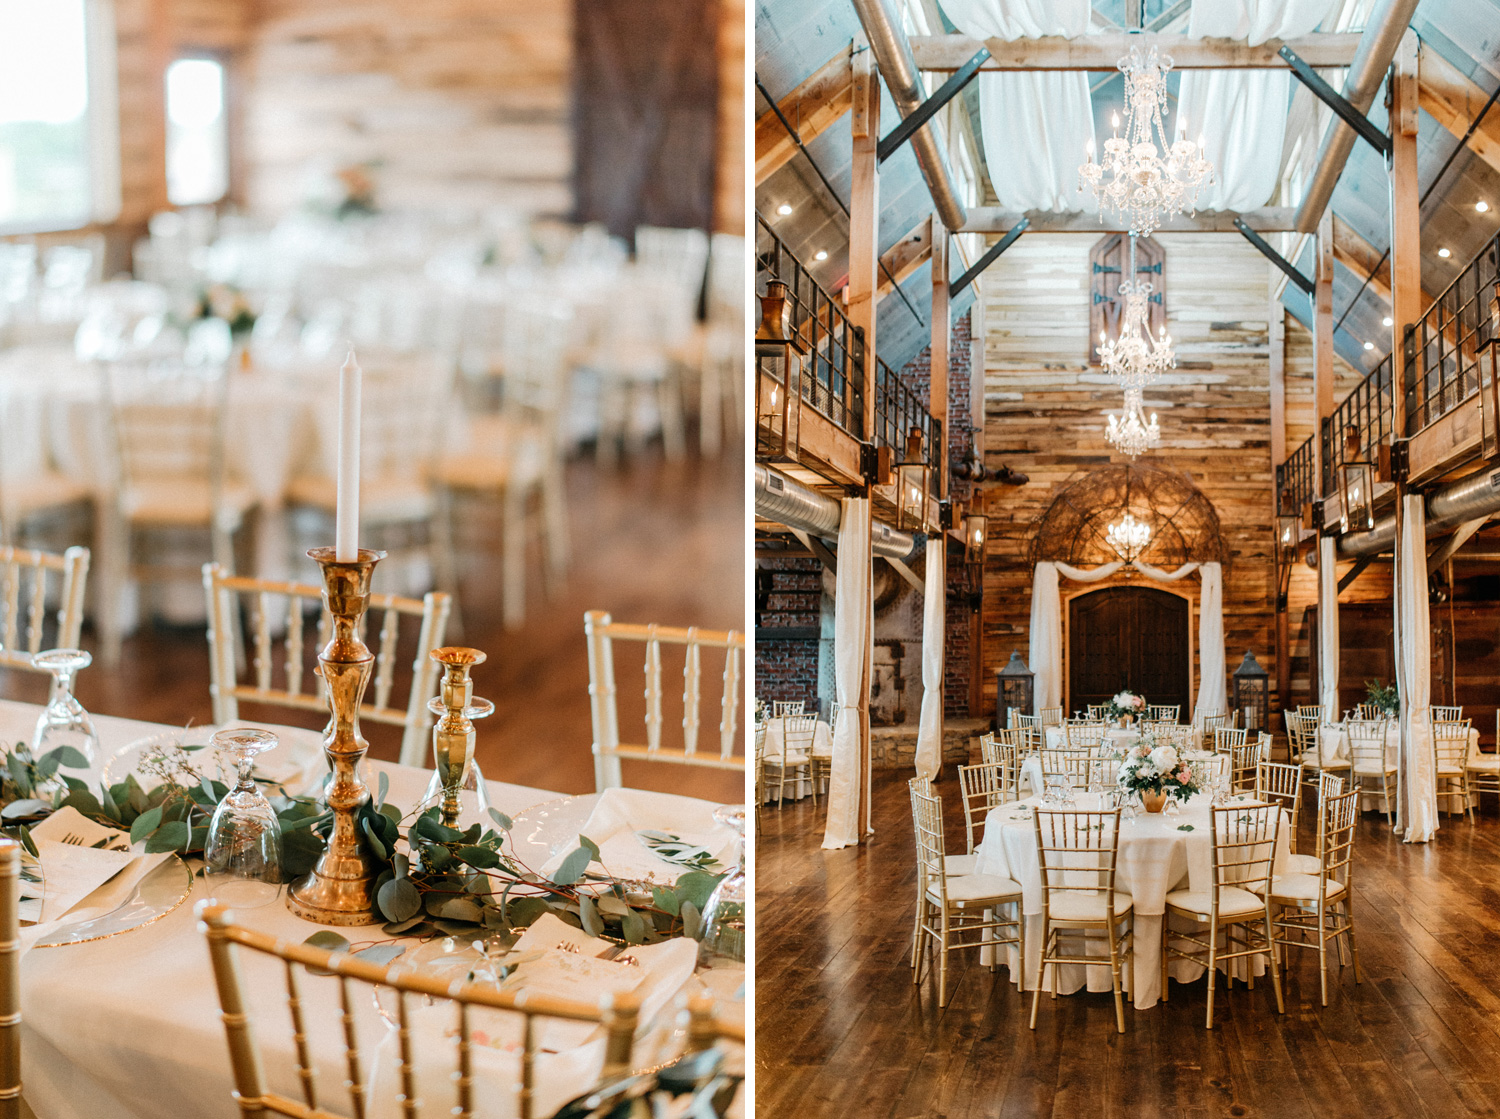 Summer wedding details at Southwind Hills by geneoh photography